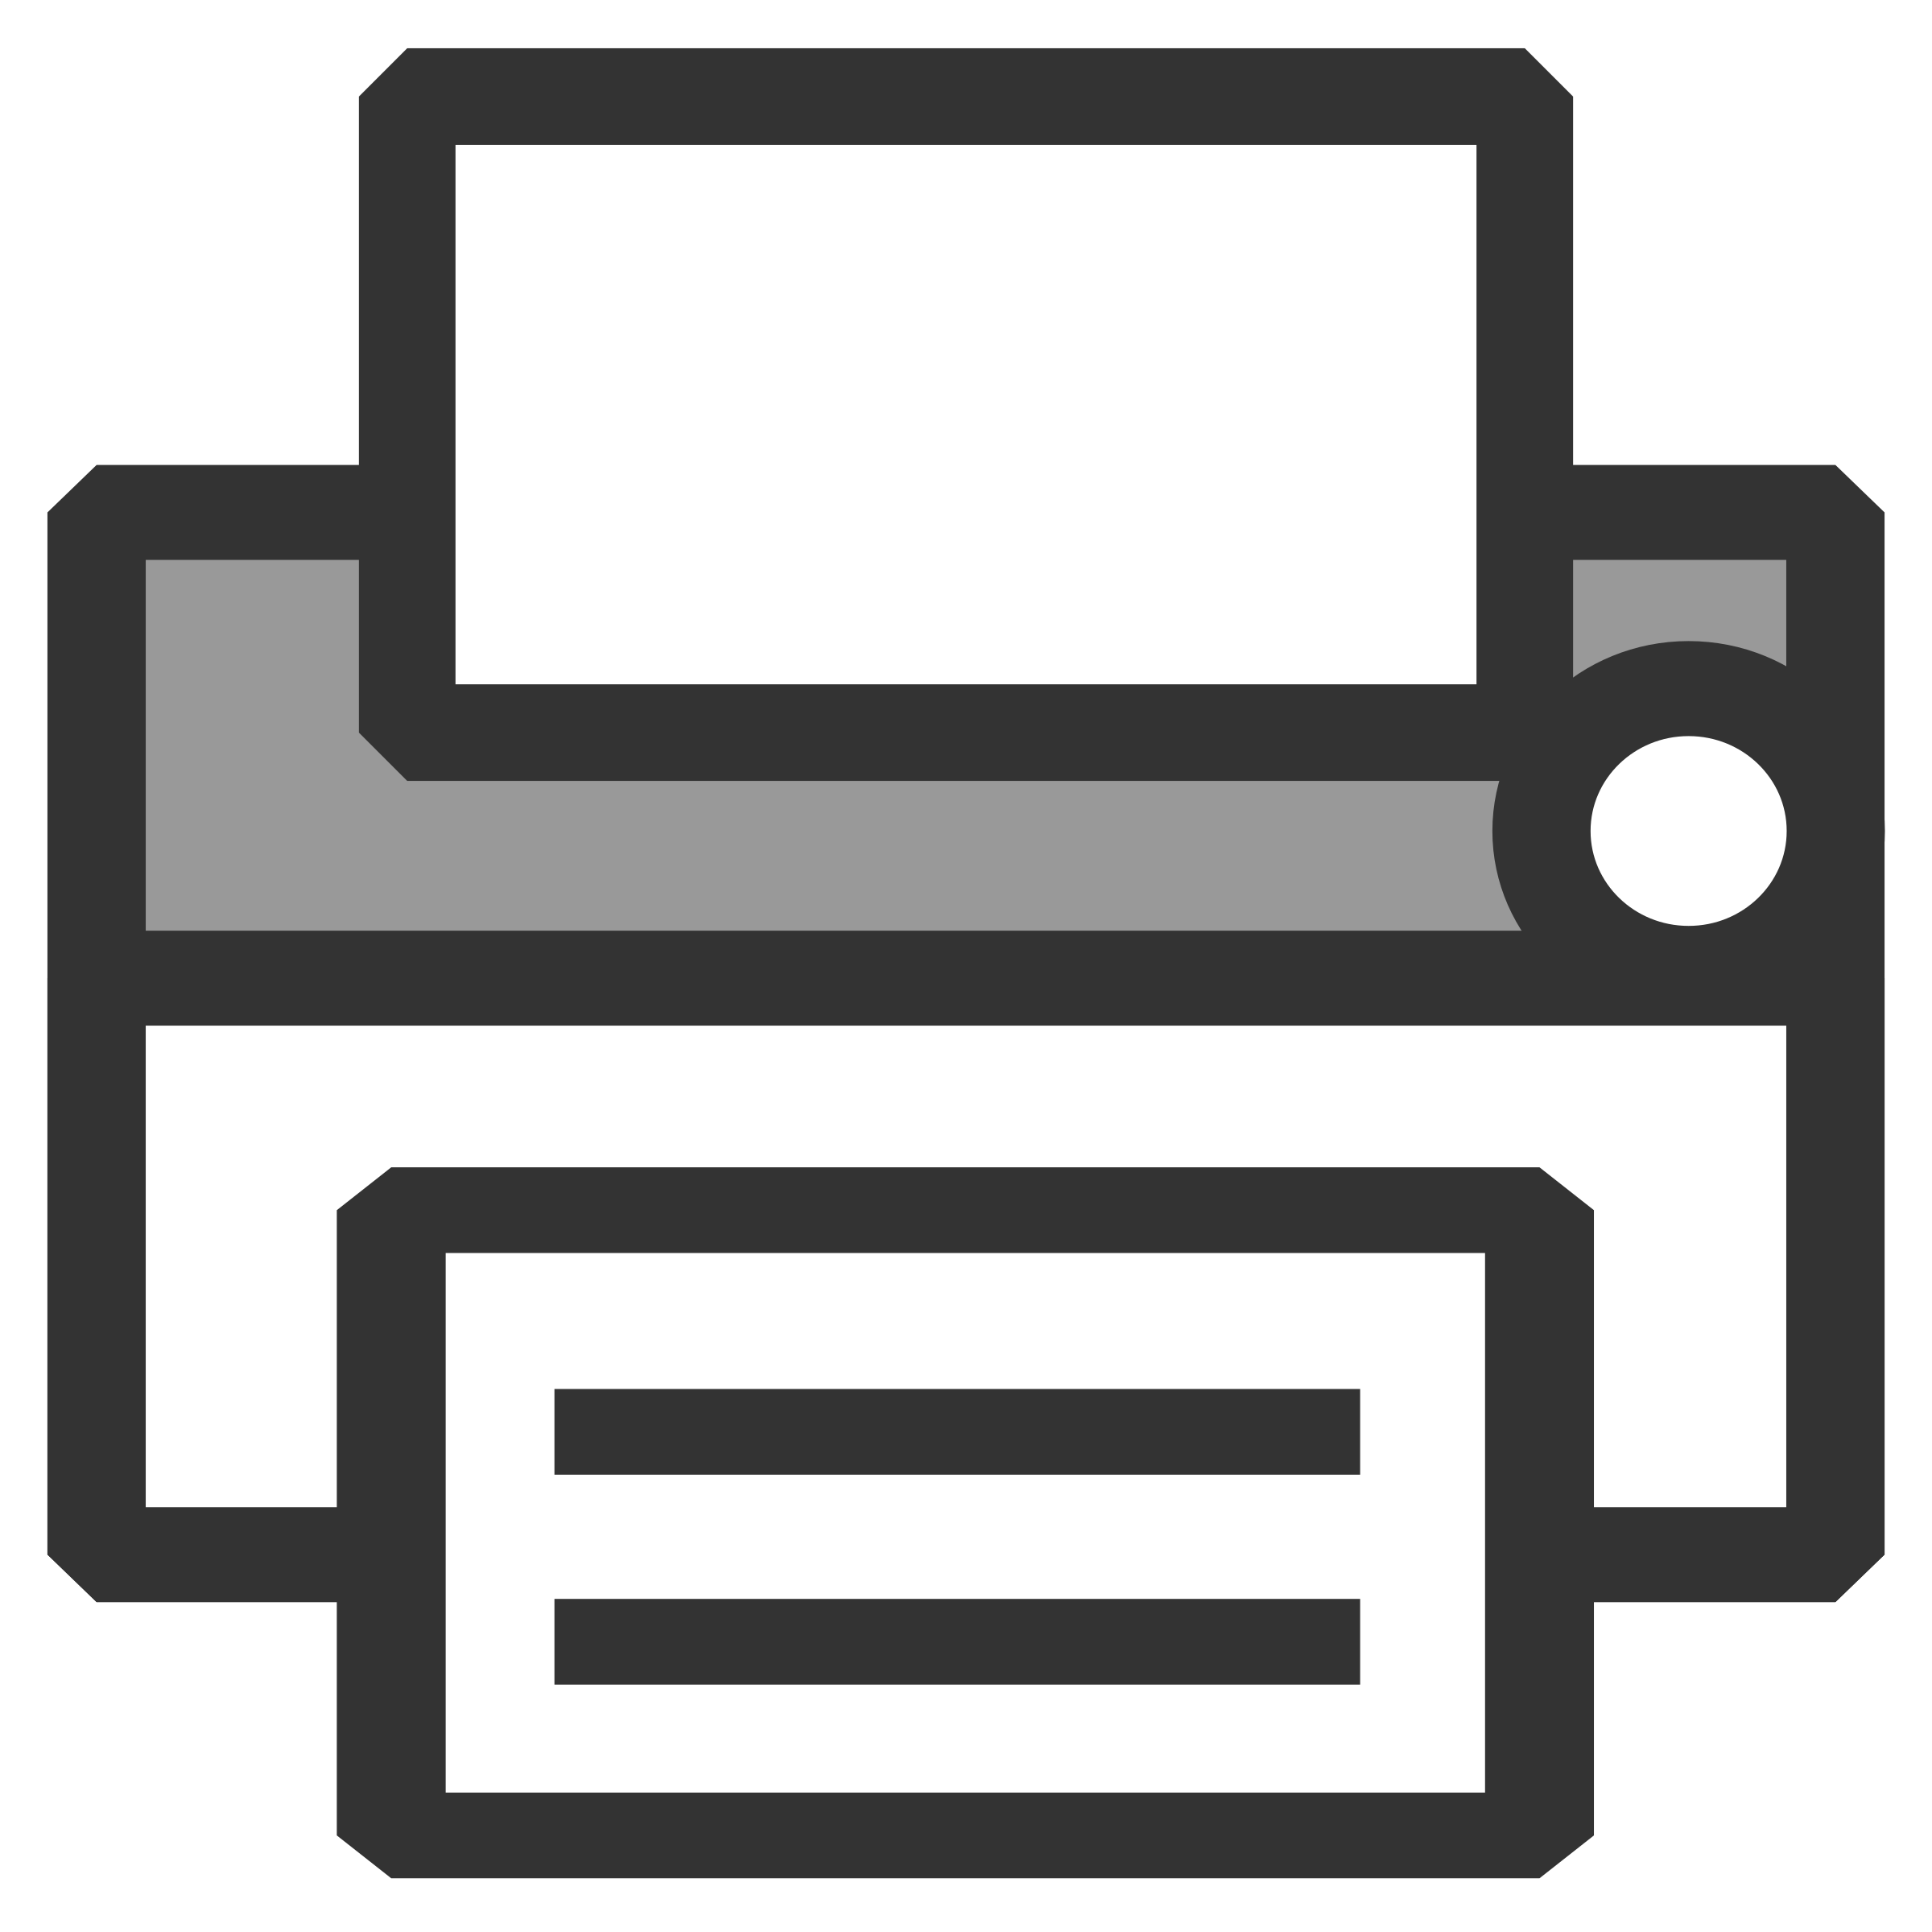 Clipart - Printer icon